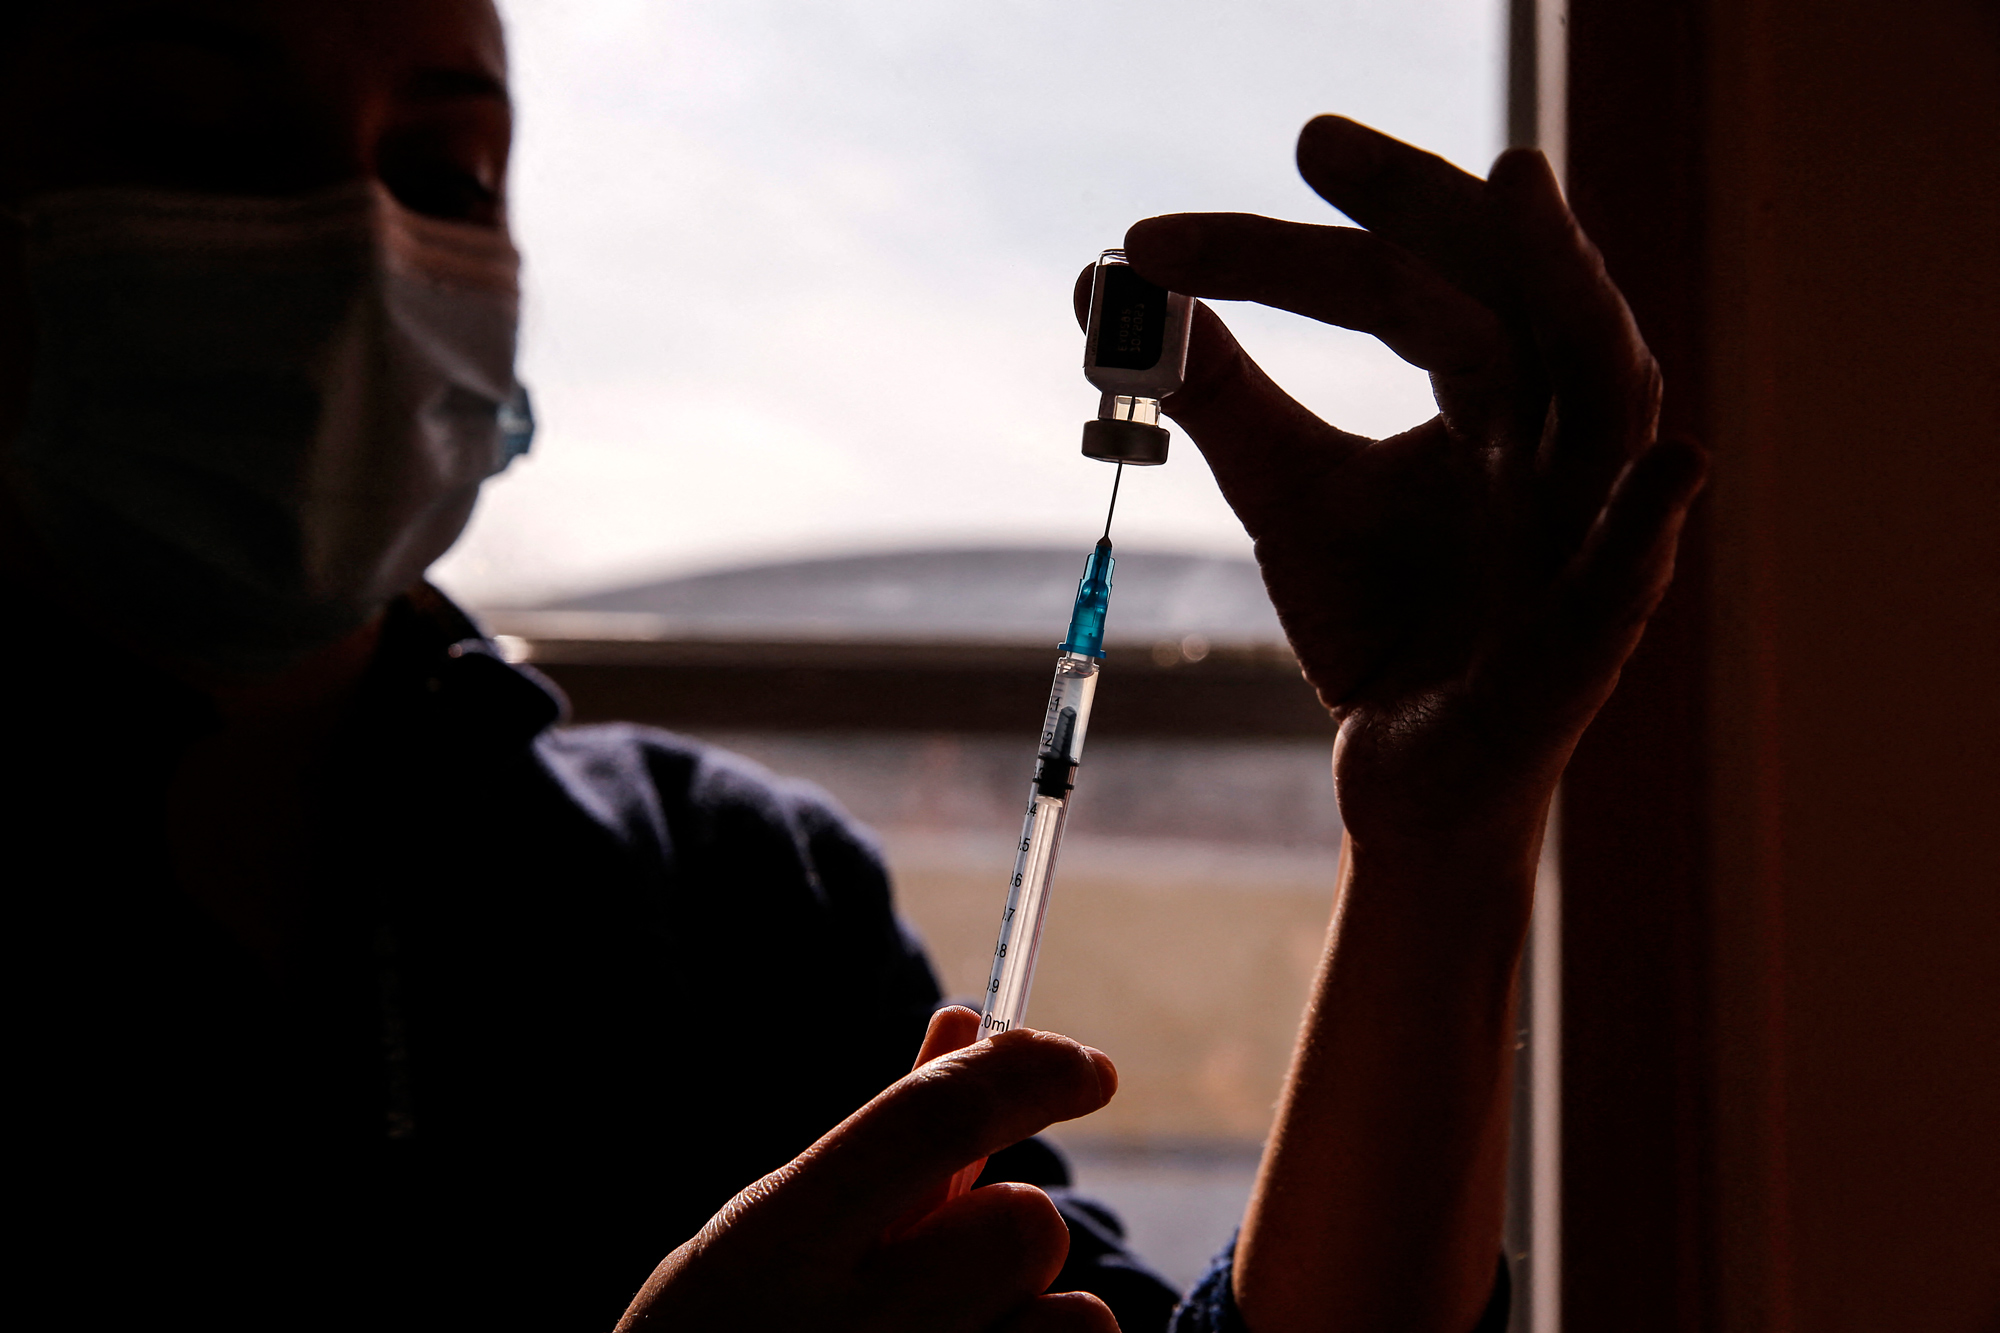 A health workers fills a syringe with a dose of the Pfizer-BioNTech vaccine at a vaccination center in Santiago, Chile, on July 3.